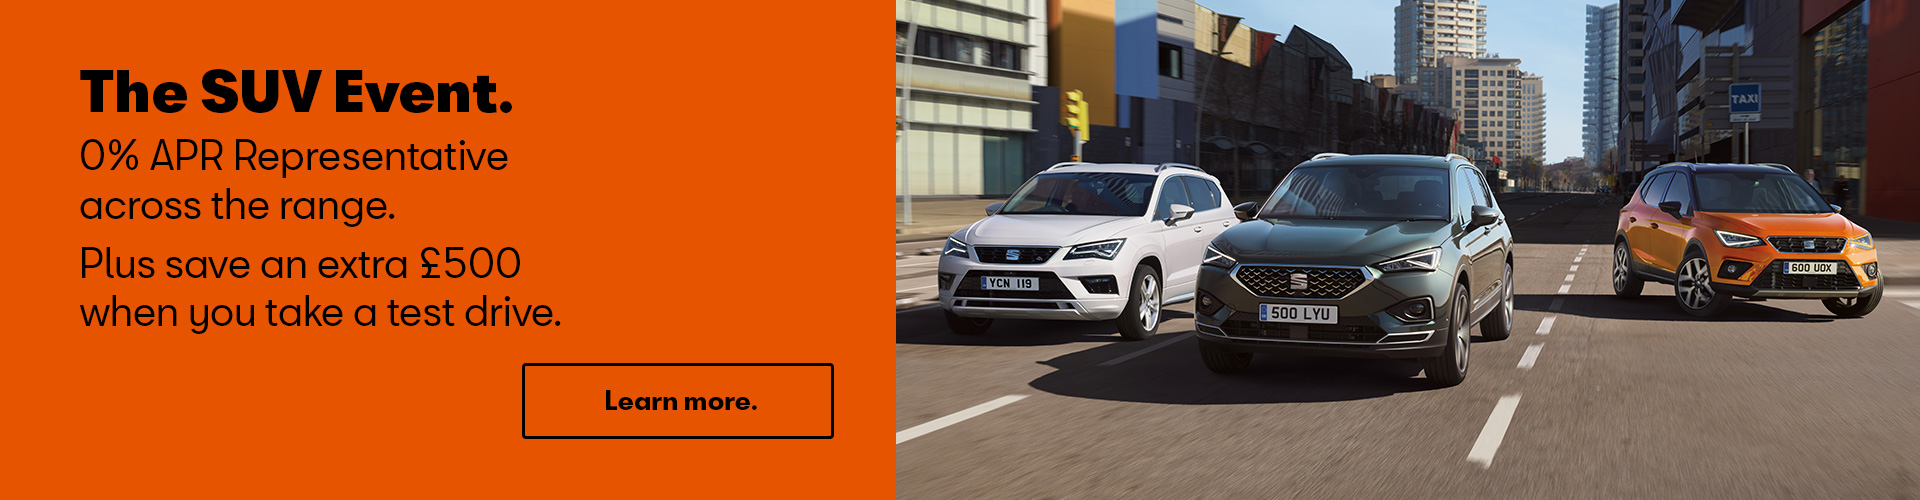 The SUV Event - 0% APR Representative across the range, plus save an extra £500 when you take a test drive